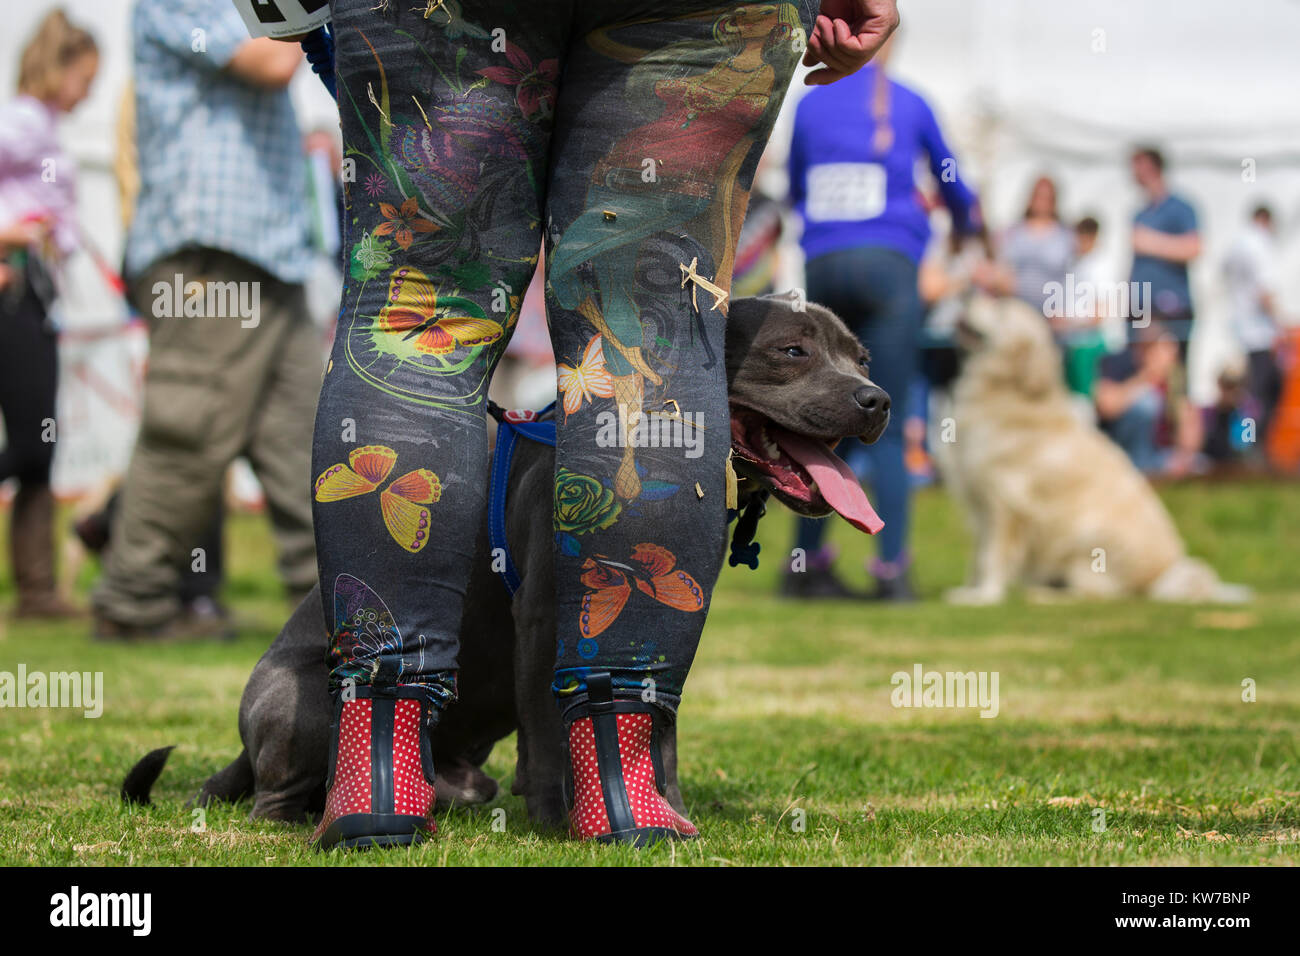 Dog show at Appleby show, Appleby-in-Westmorland, Cumbria, August 2017 - Stock Image